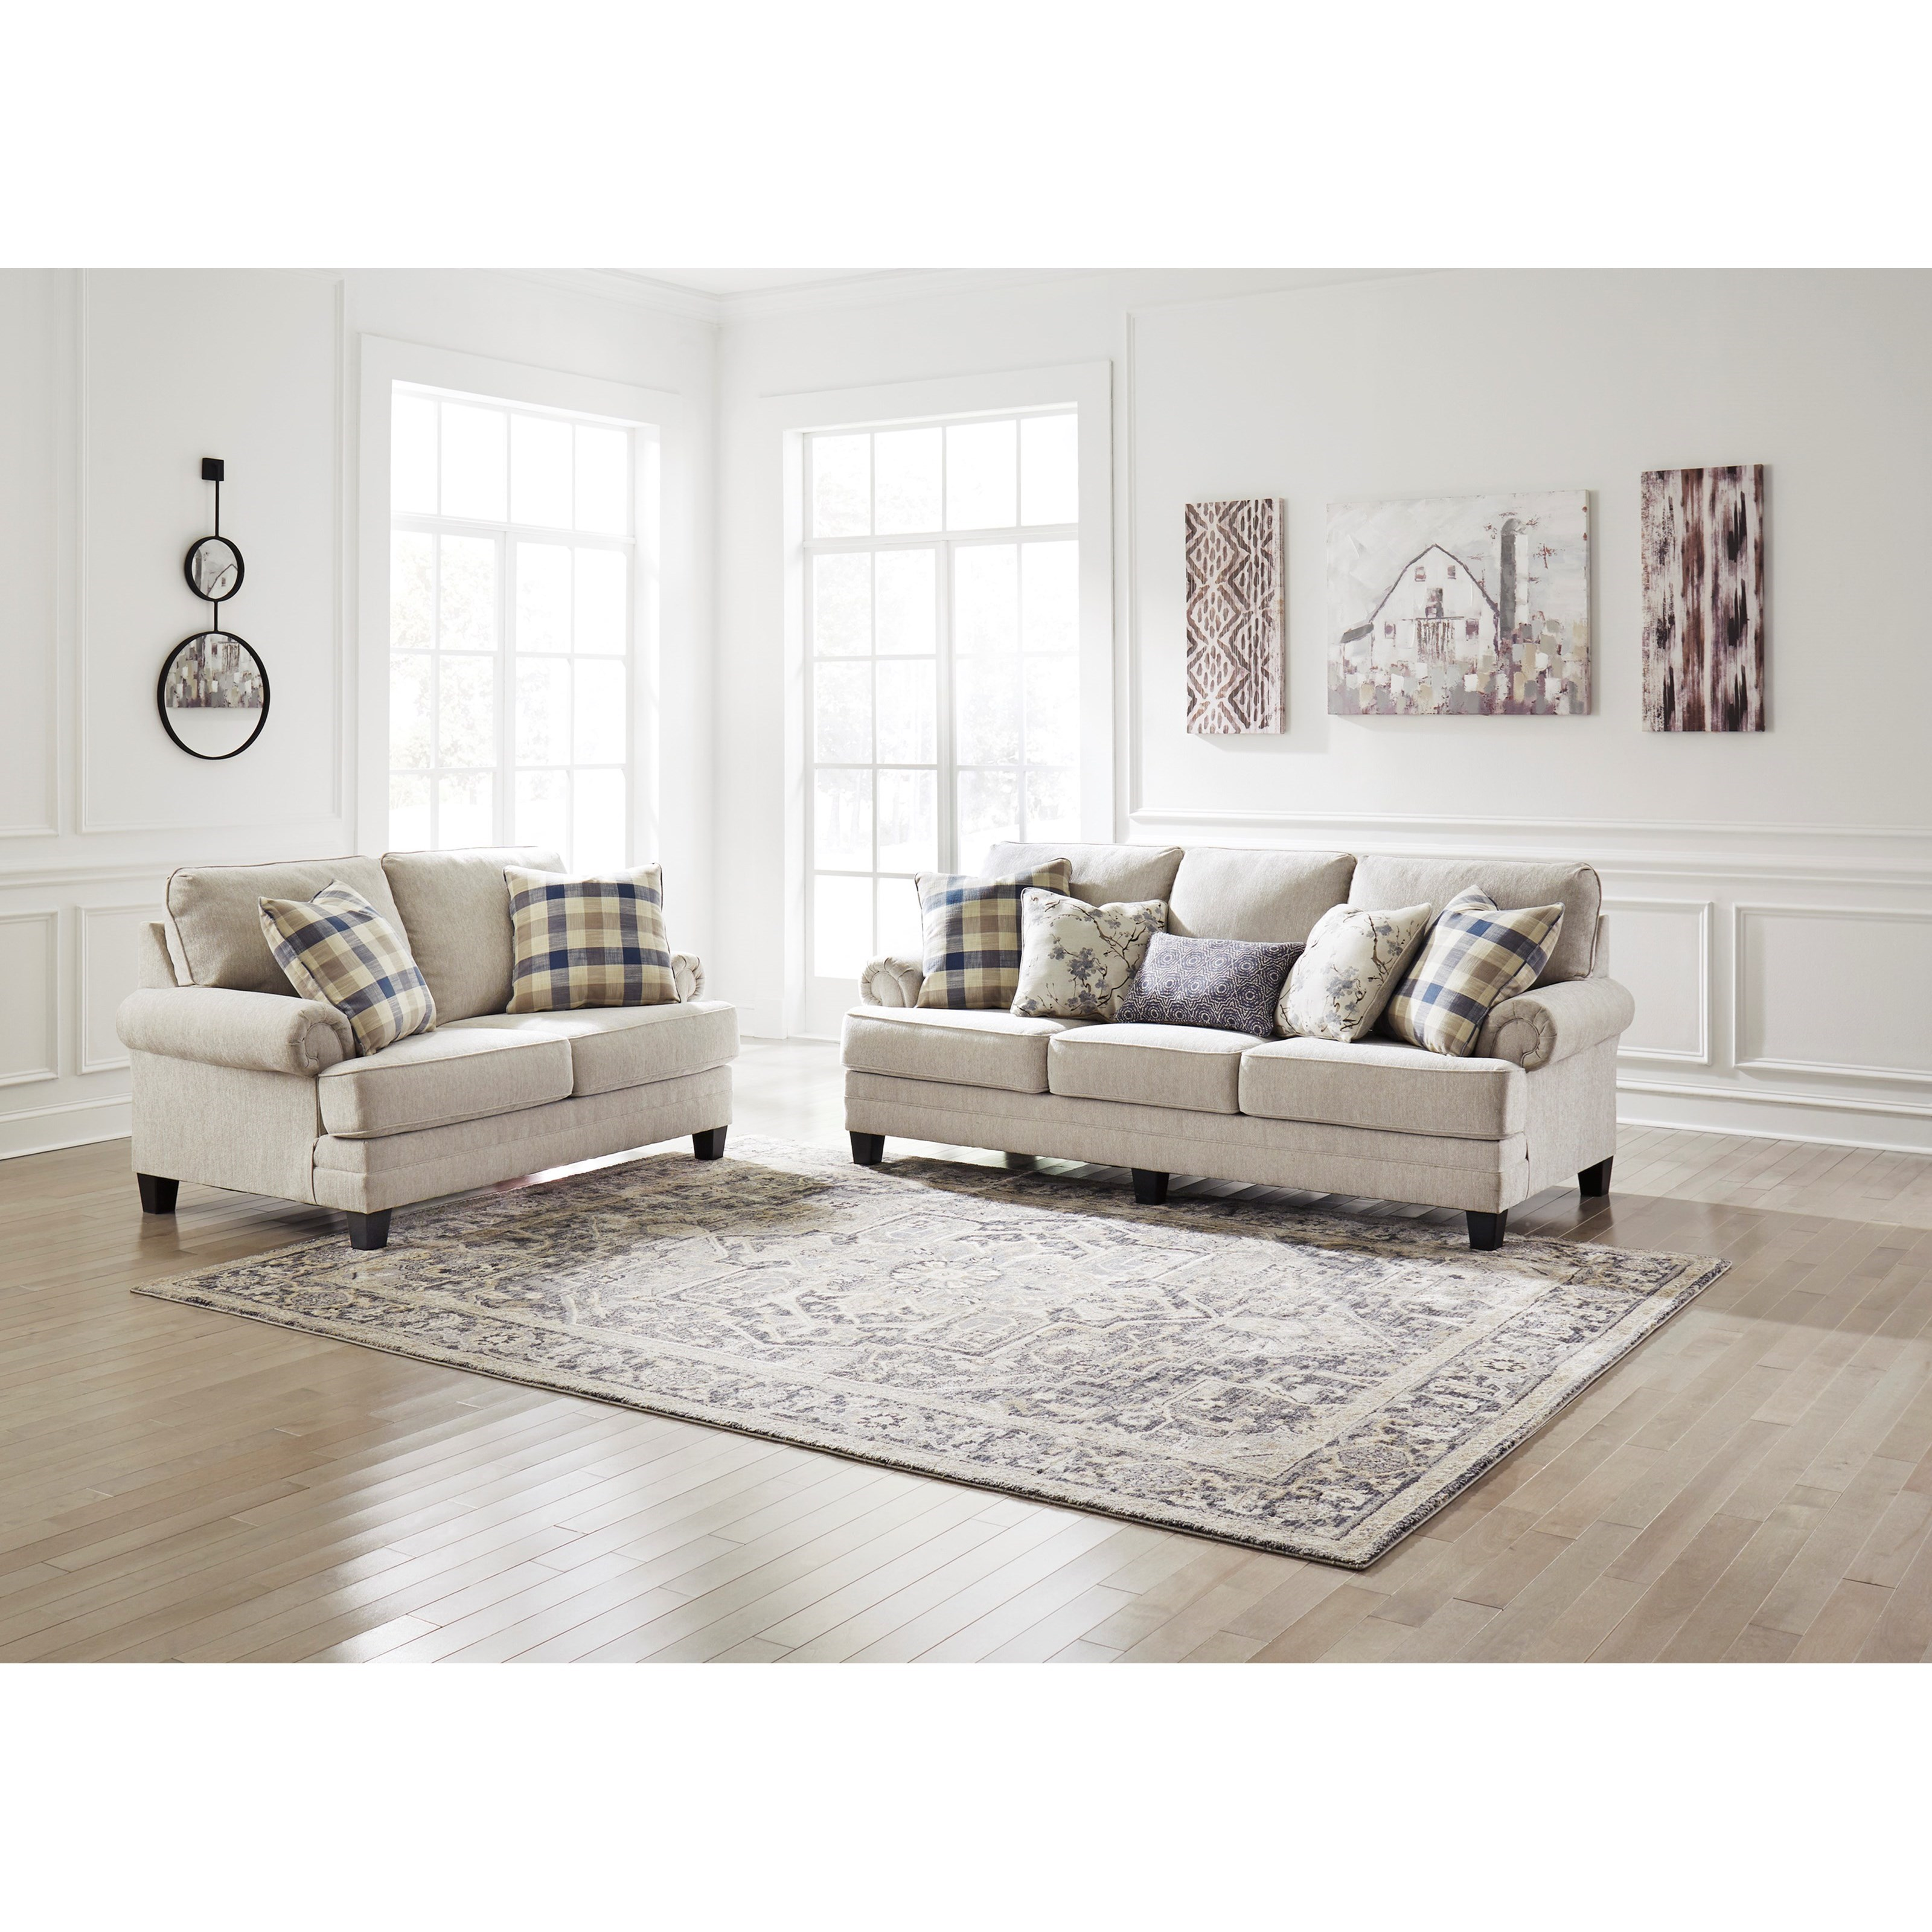 Meggett Living Room Group by Benchcraft at Beck's Furniture